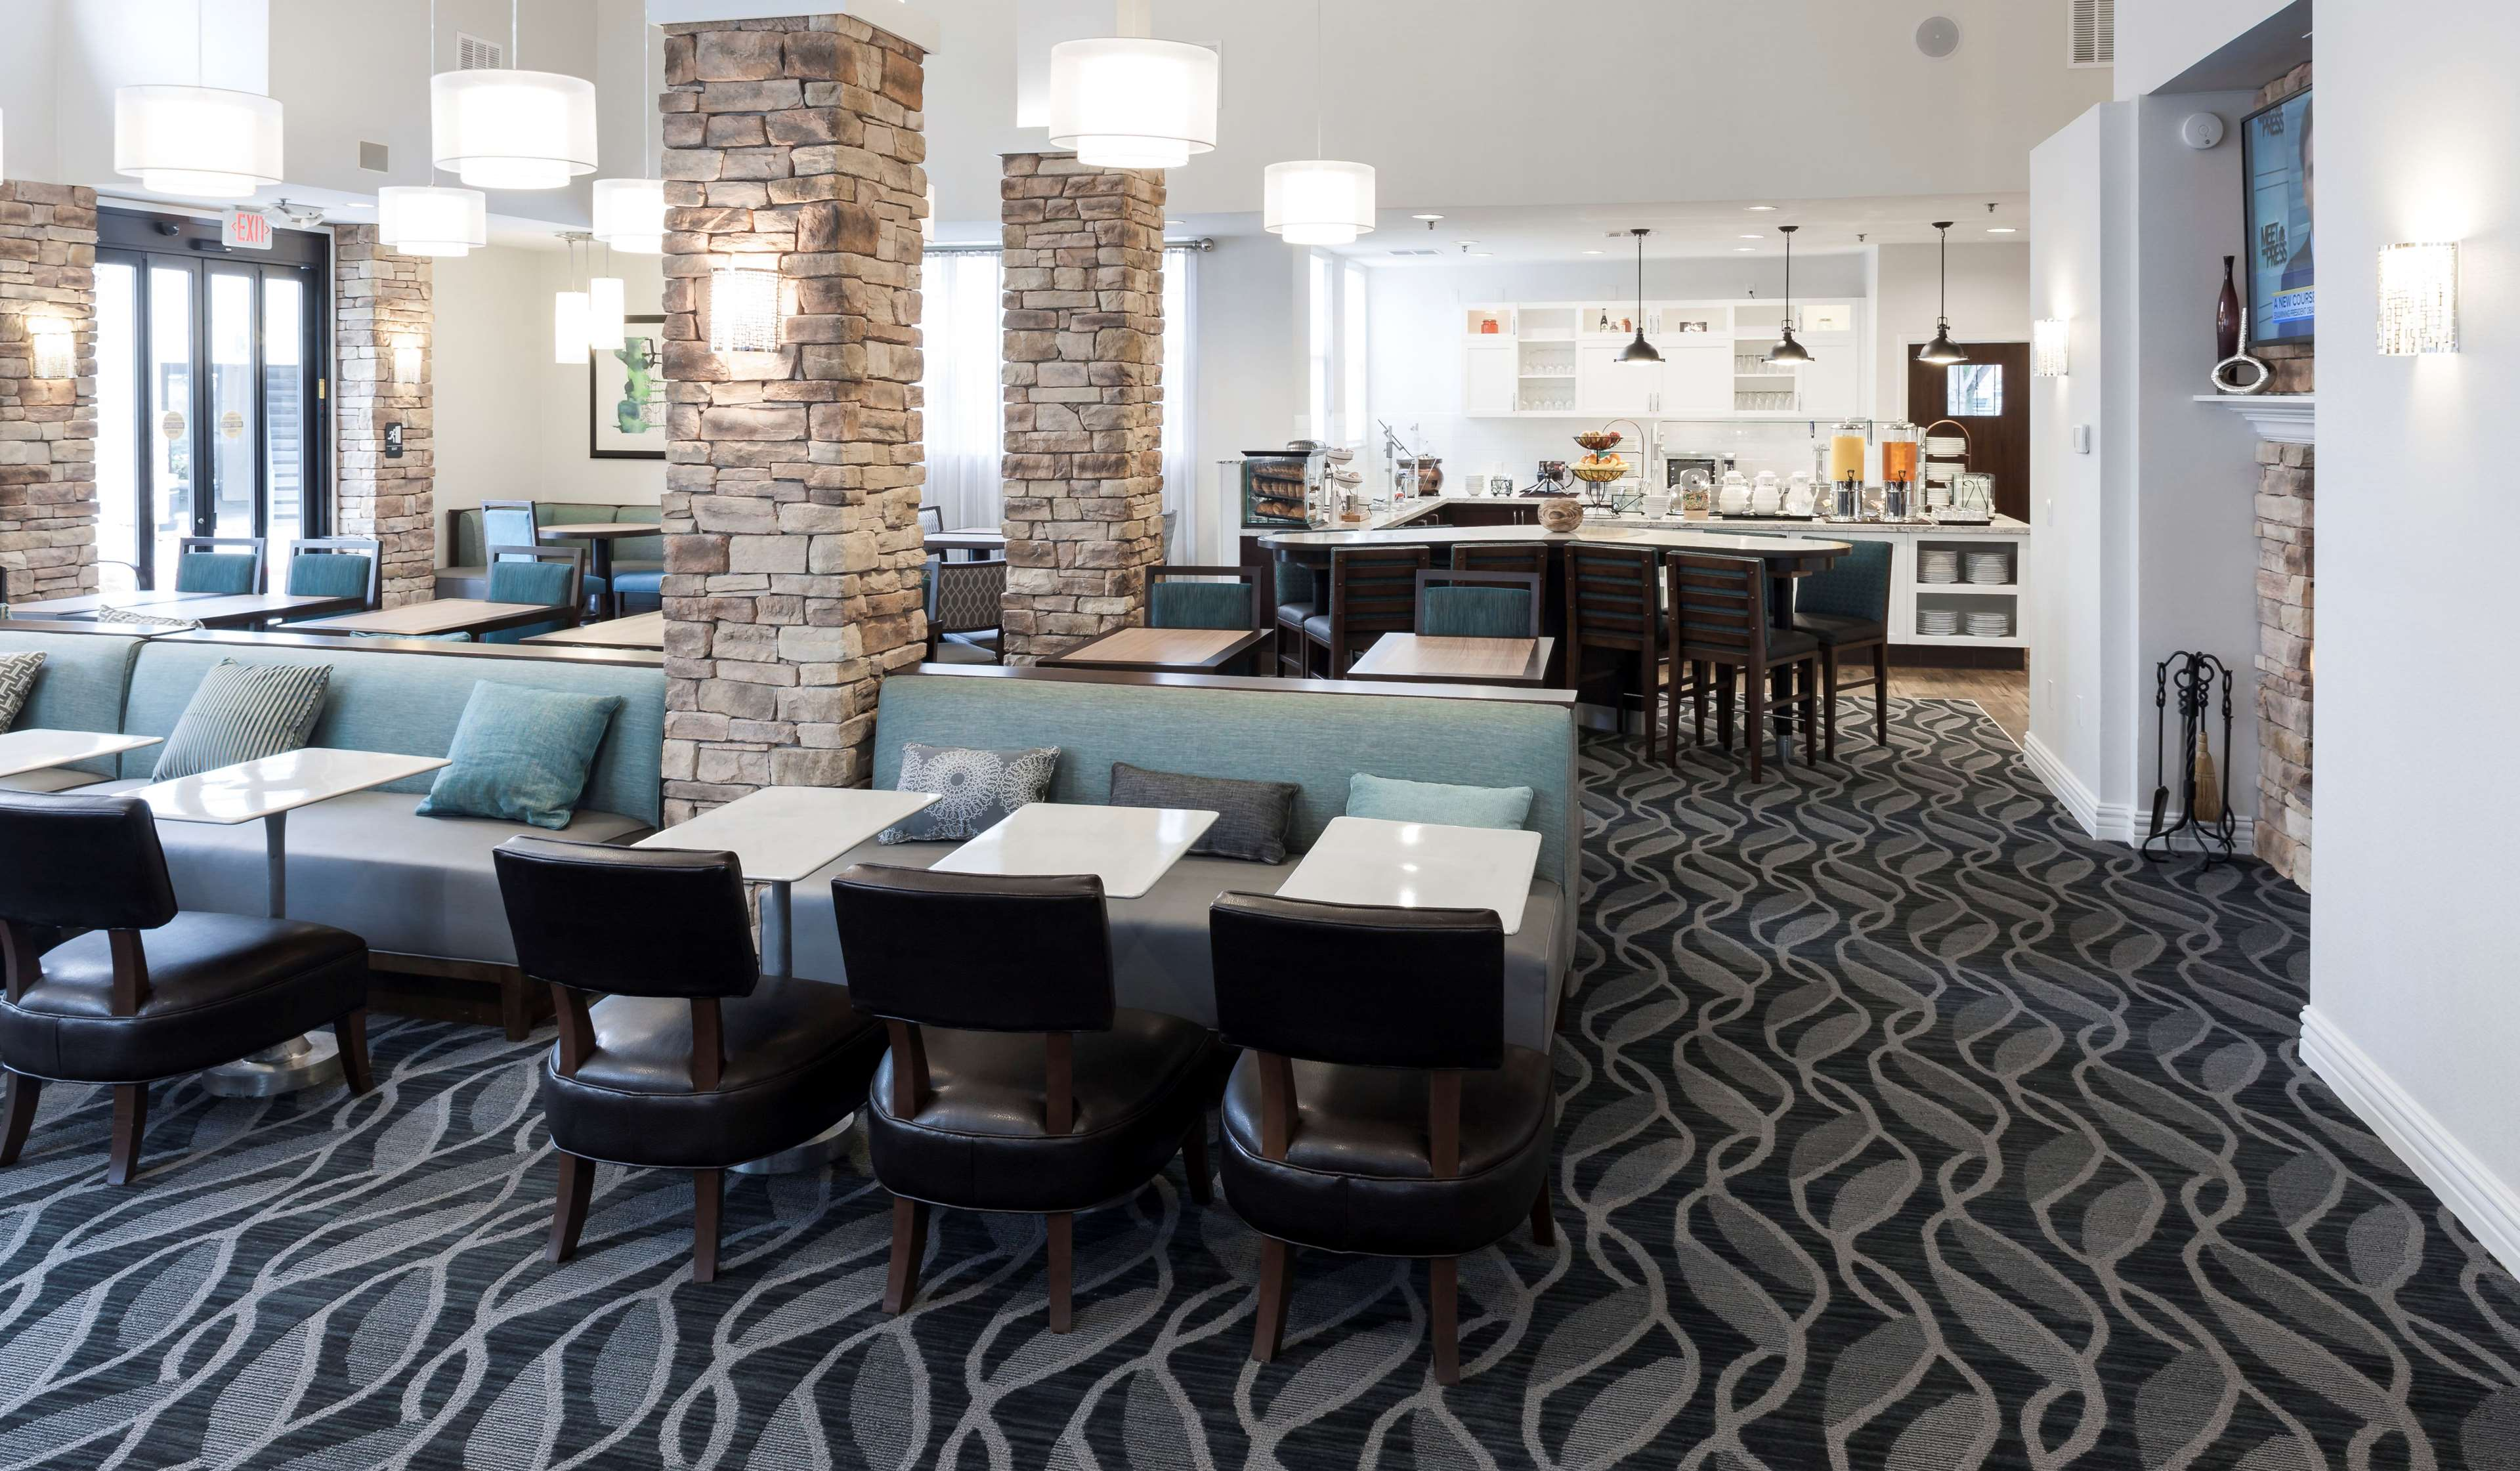 Homewood Suites by Hilton San Jose Airport-Silicon Valley image 5